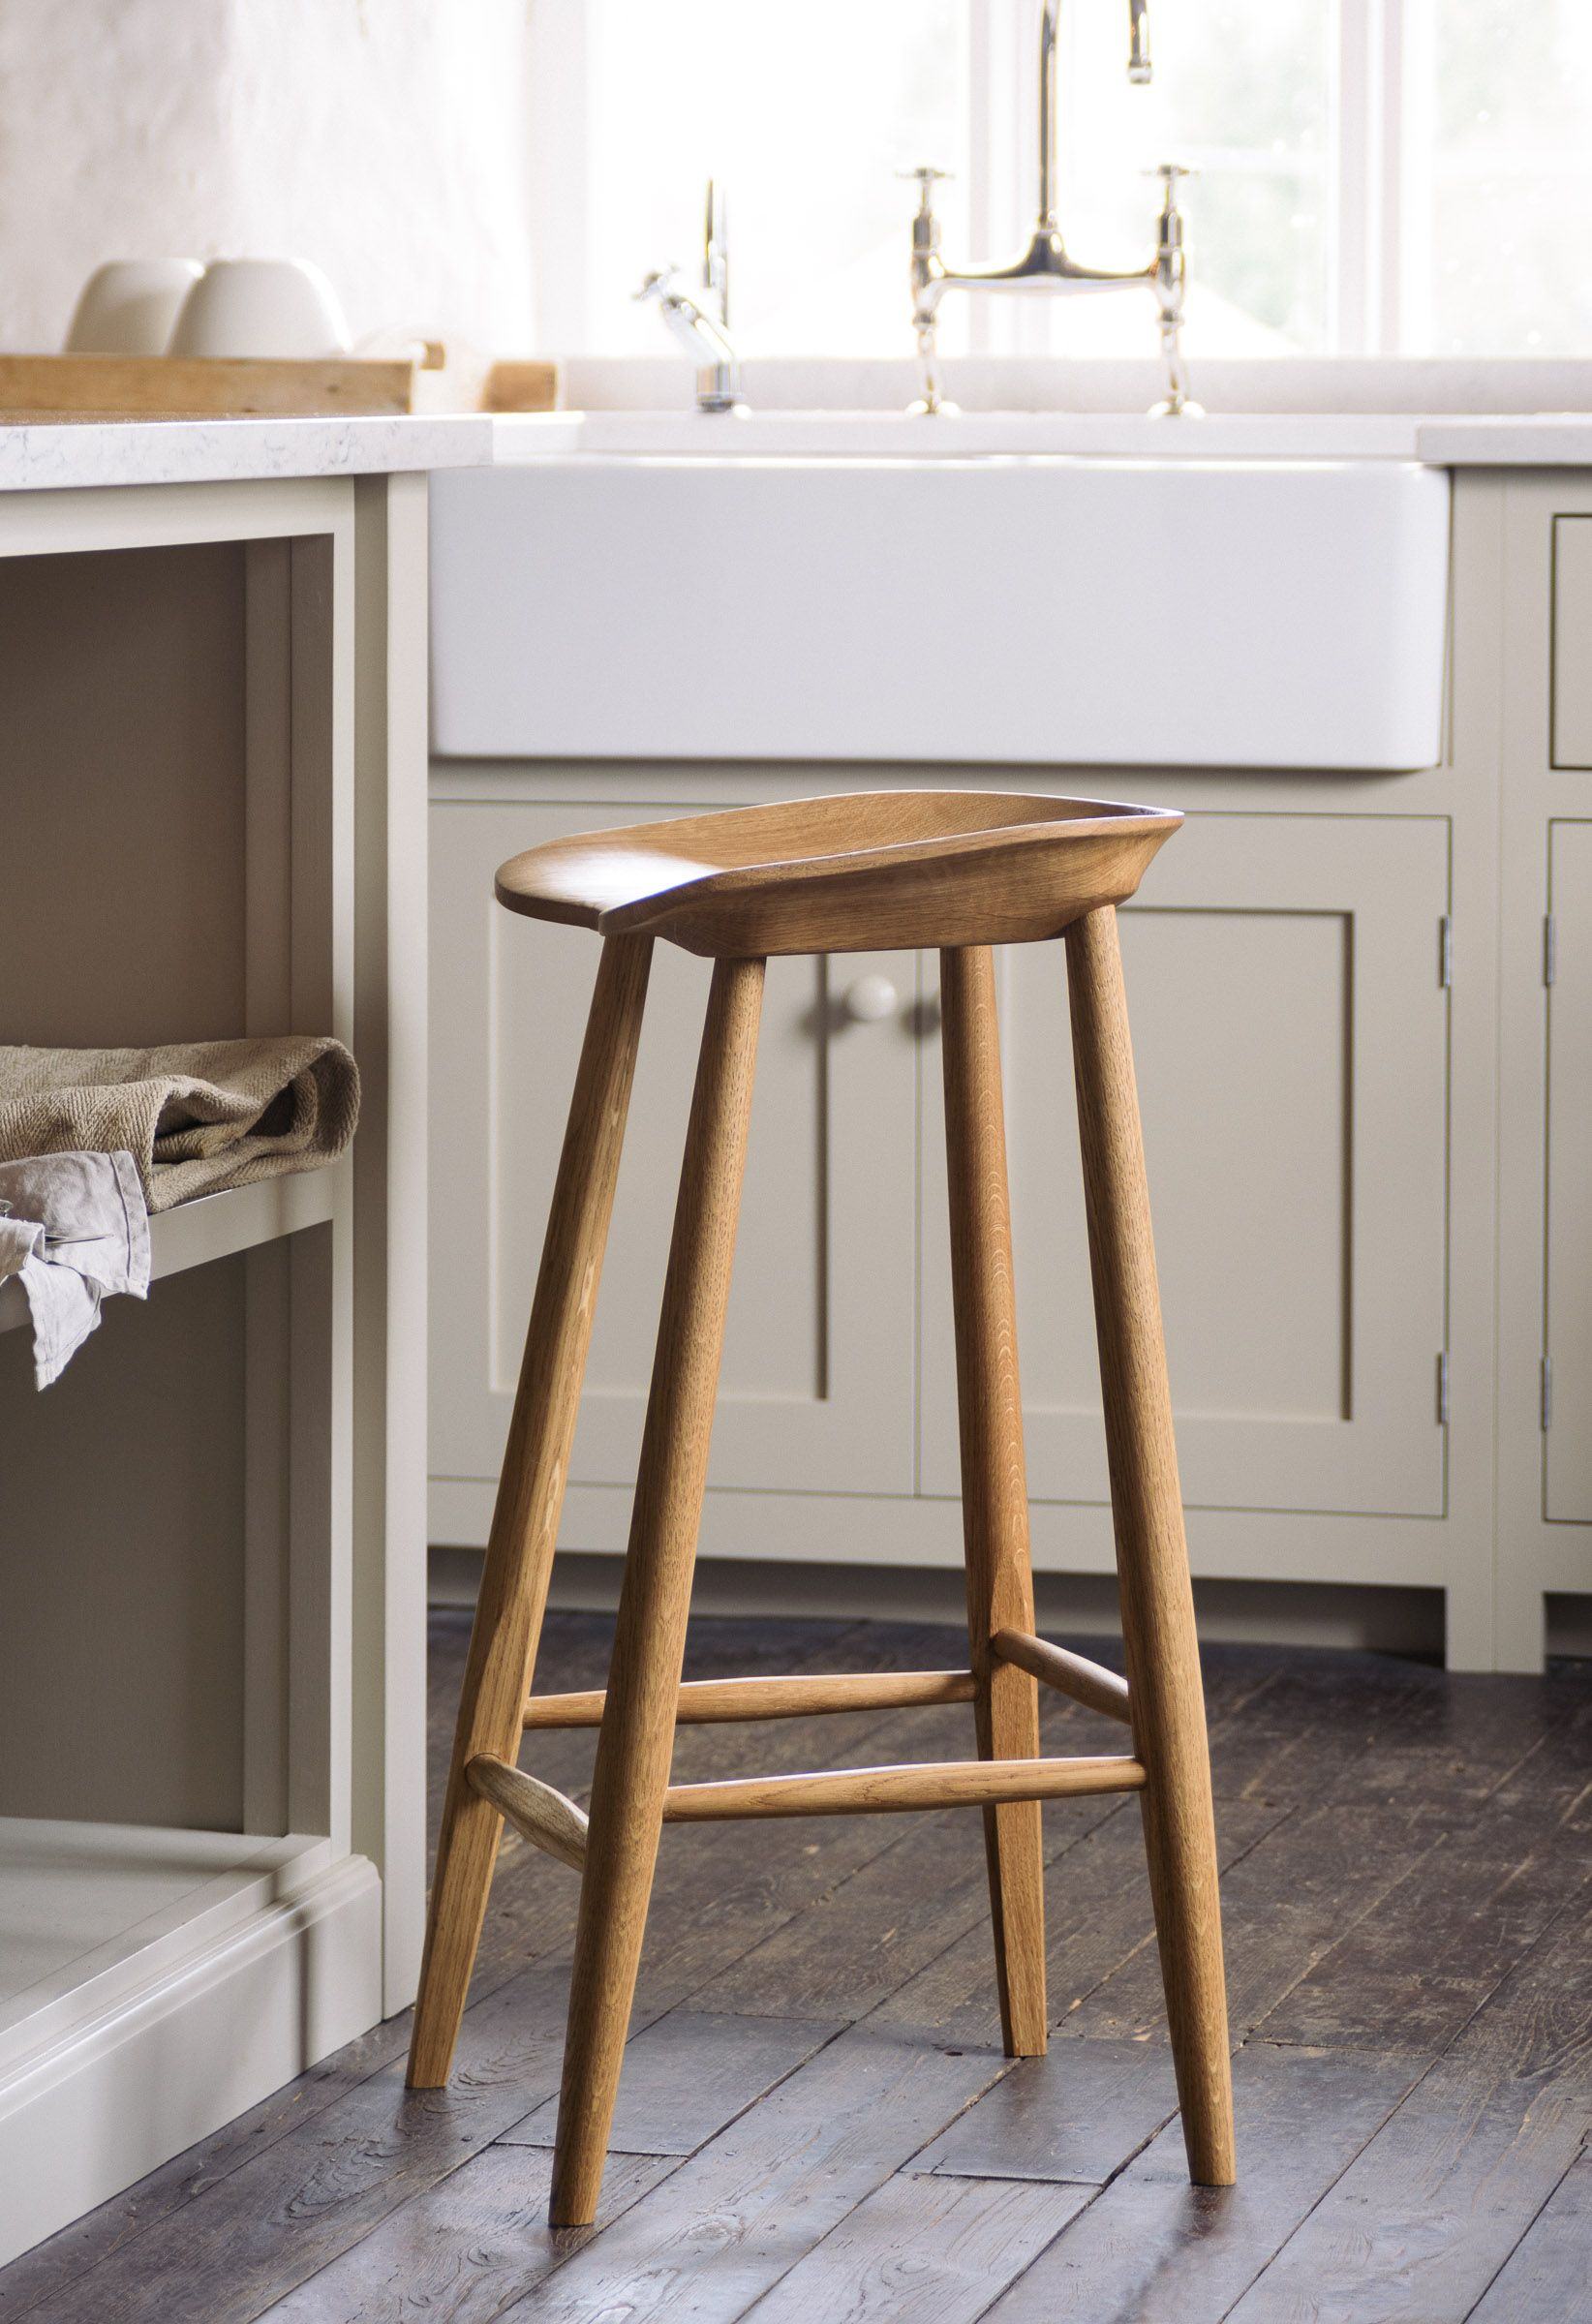 wooden kitchen stools lowes faucets delta introducing the brand new bum stool by devol chairs